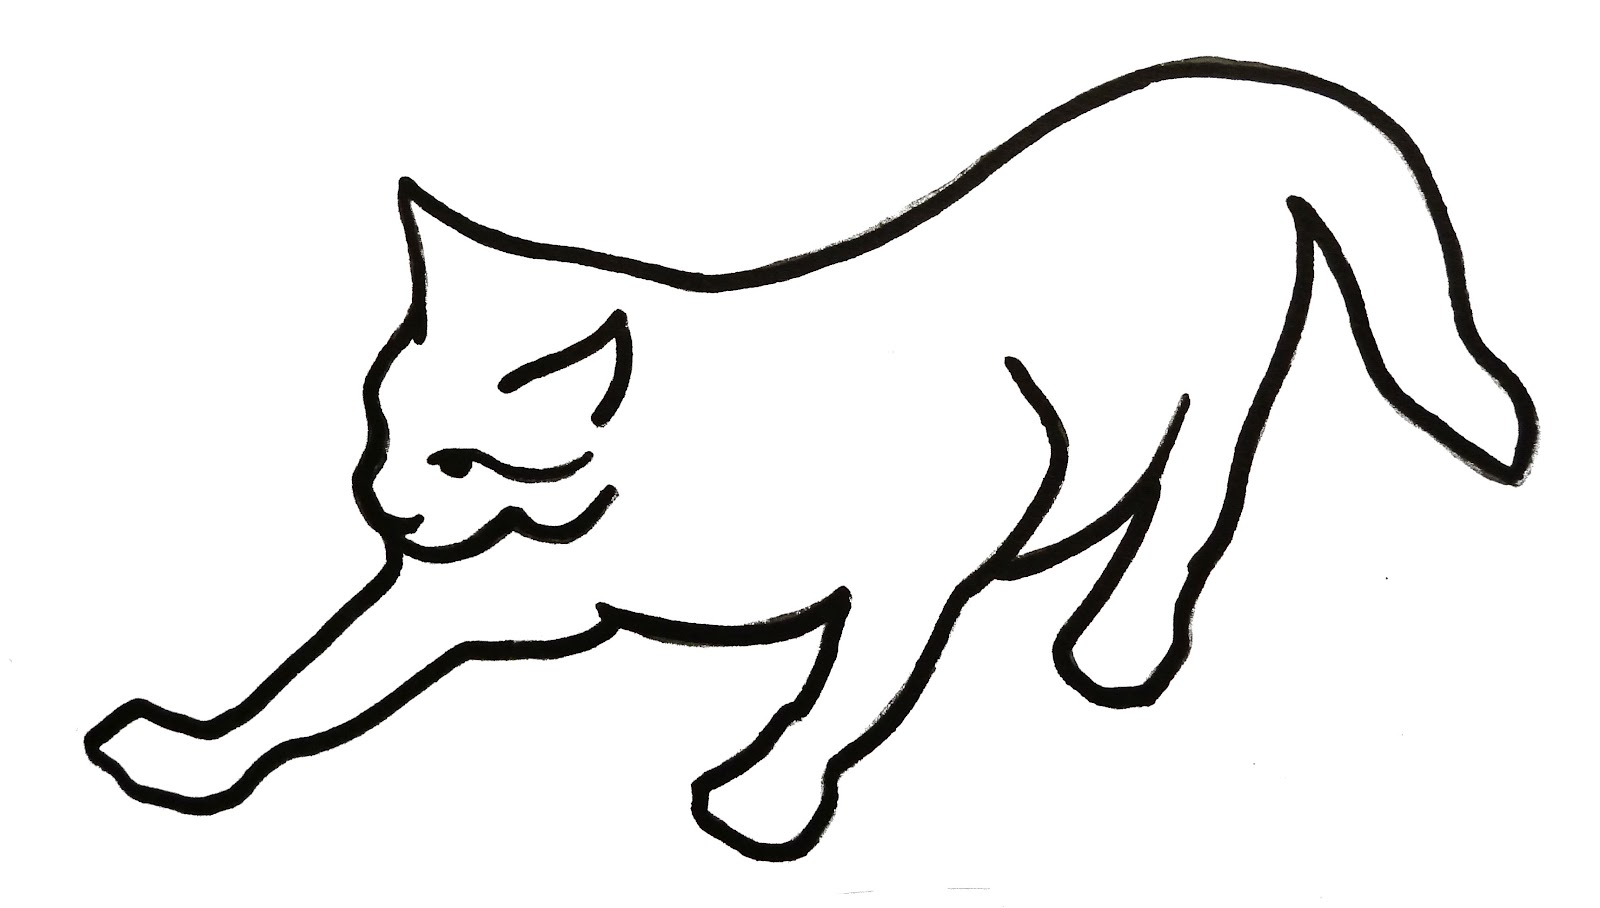 Line Drawing Of Cat : Cat line drawings clipart best